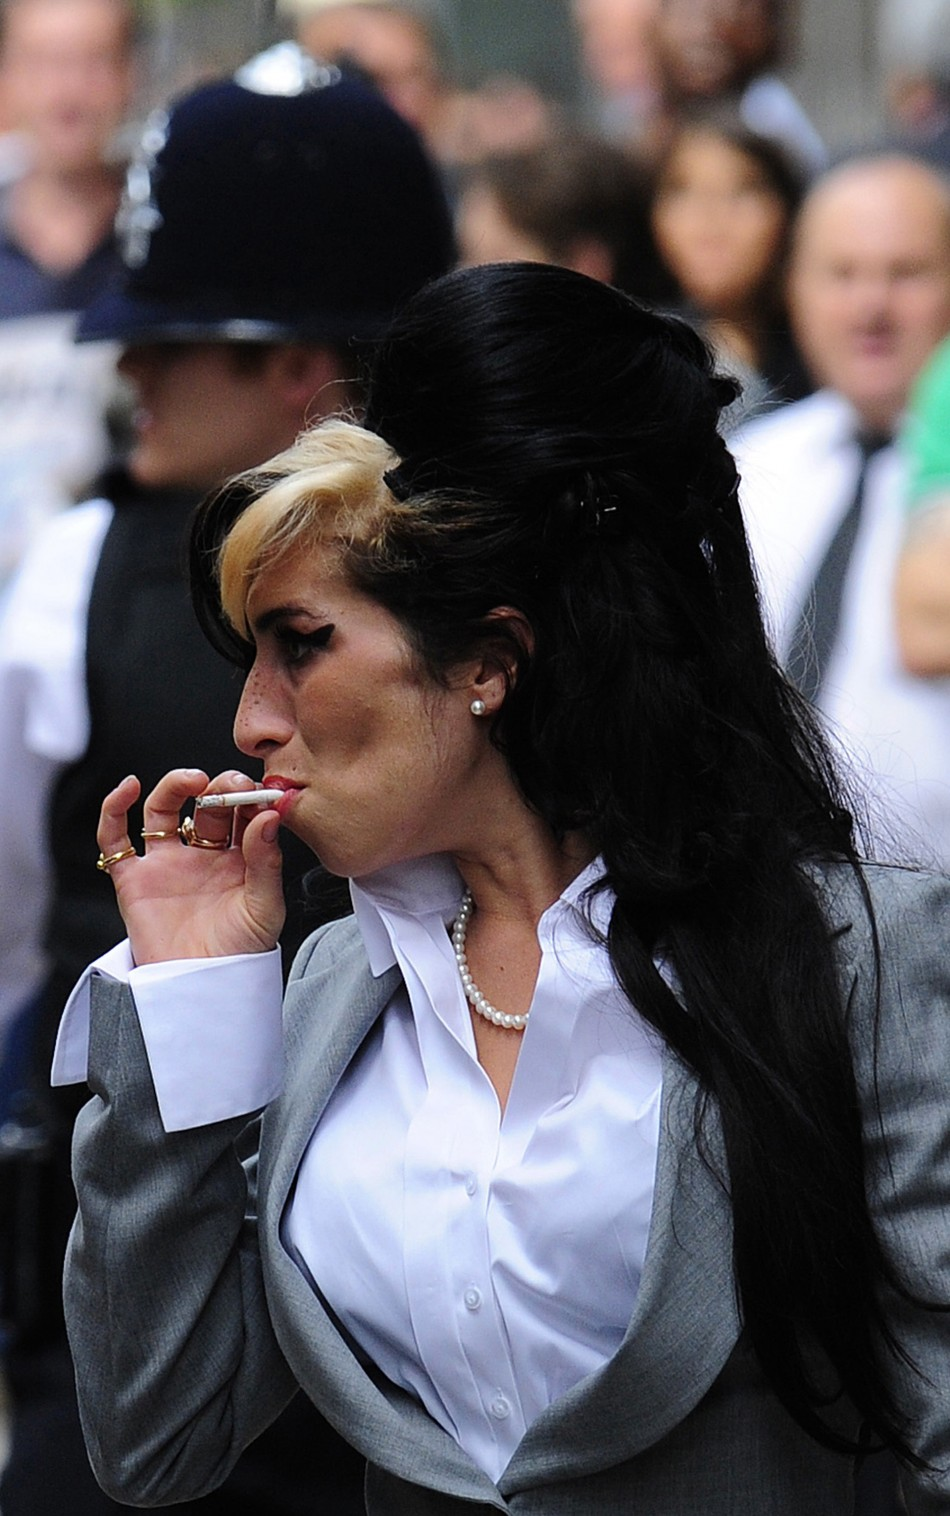 British singer Winehouse arrives at Westminster Magistrates Court in central London